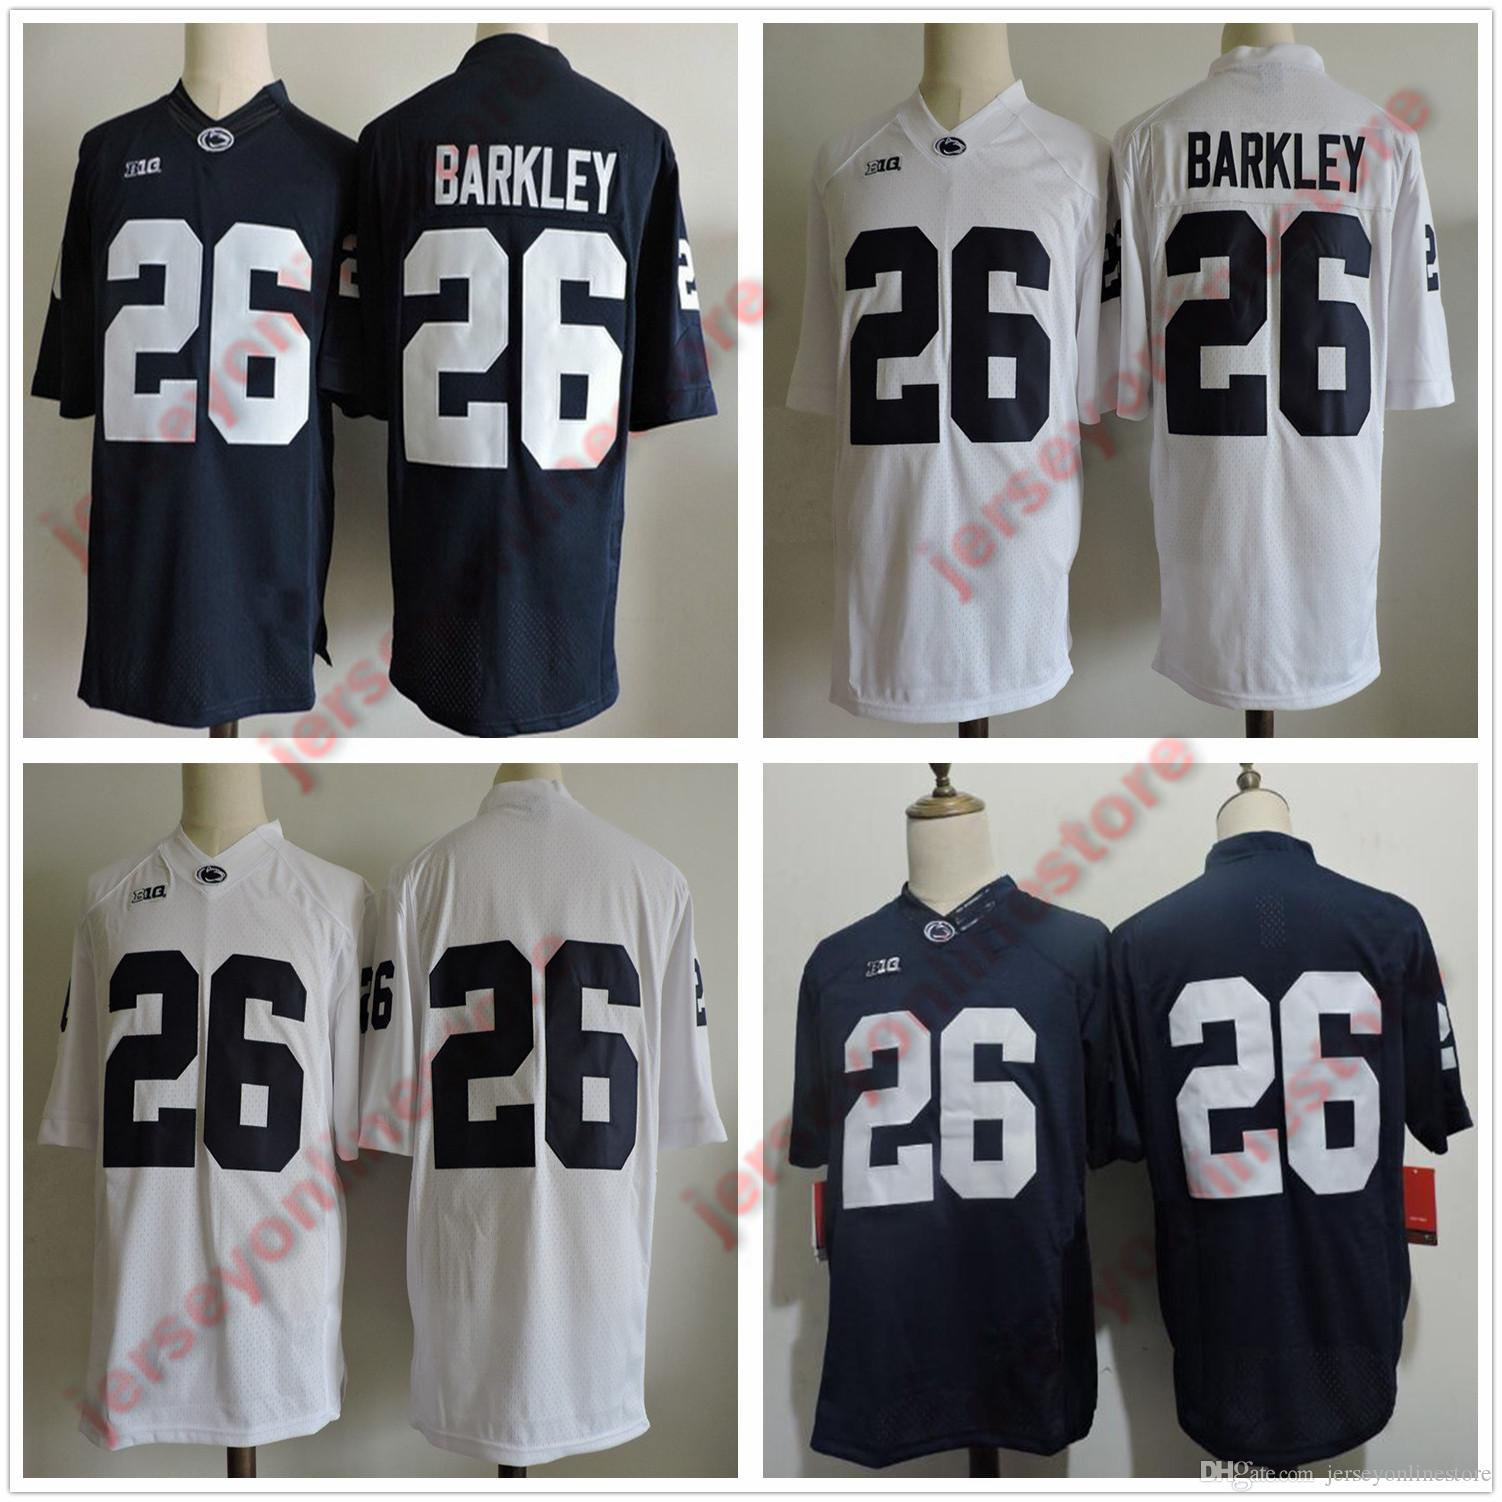 c5addab8916 2019 Mens Womens Youth Kids Penn State Nittany Lions Saquon Barkley College Jersey  Navy White Stitched Barkley Football Jerseys From Jerseyonlinestore